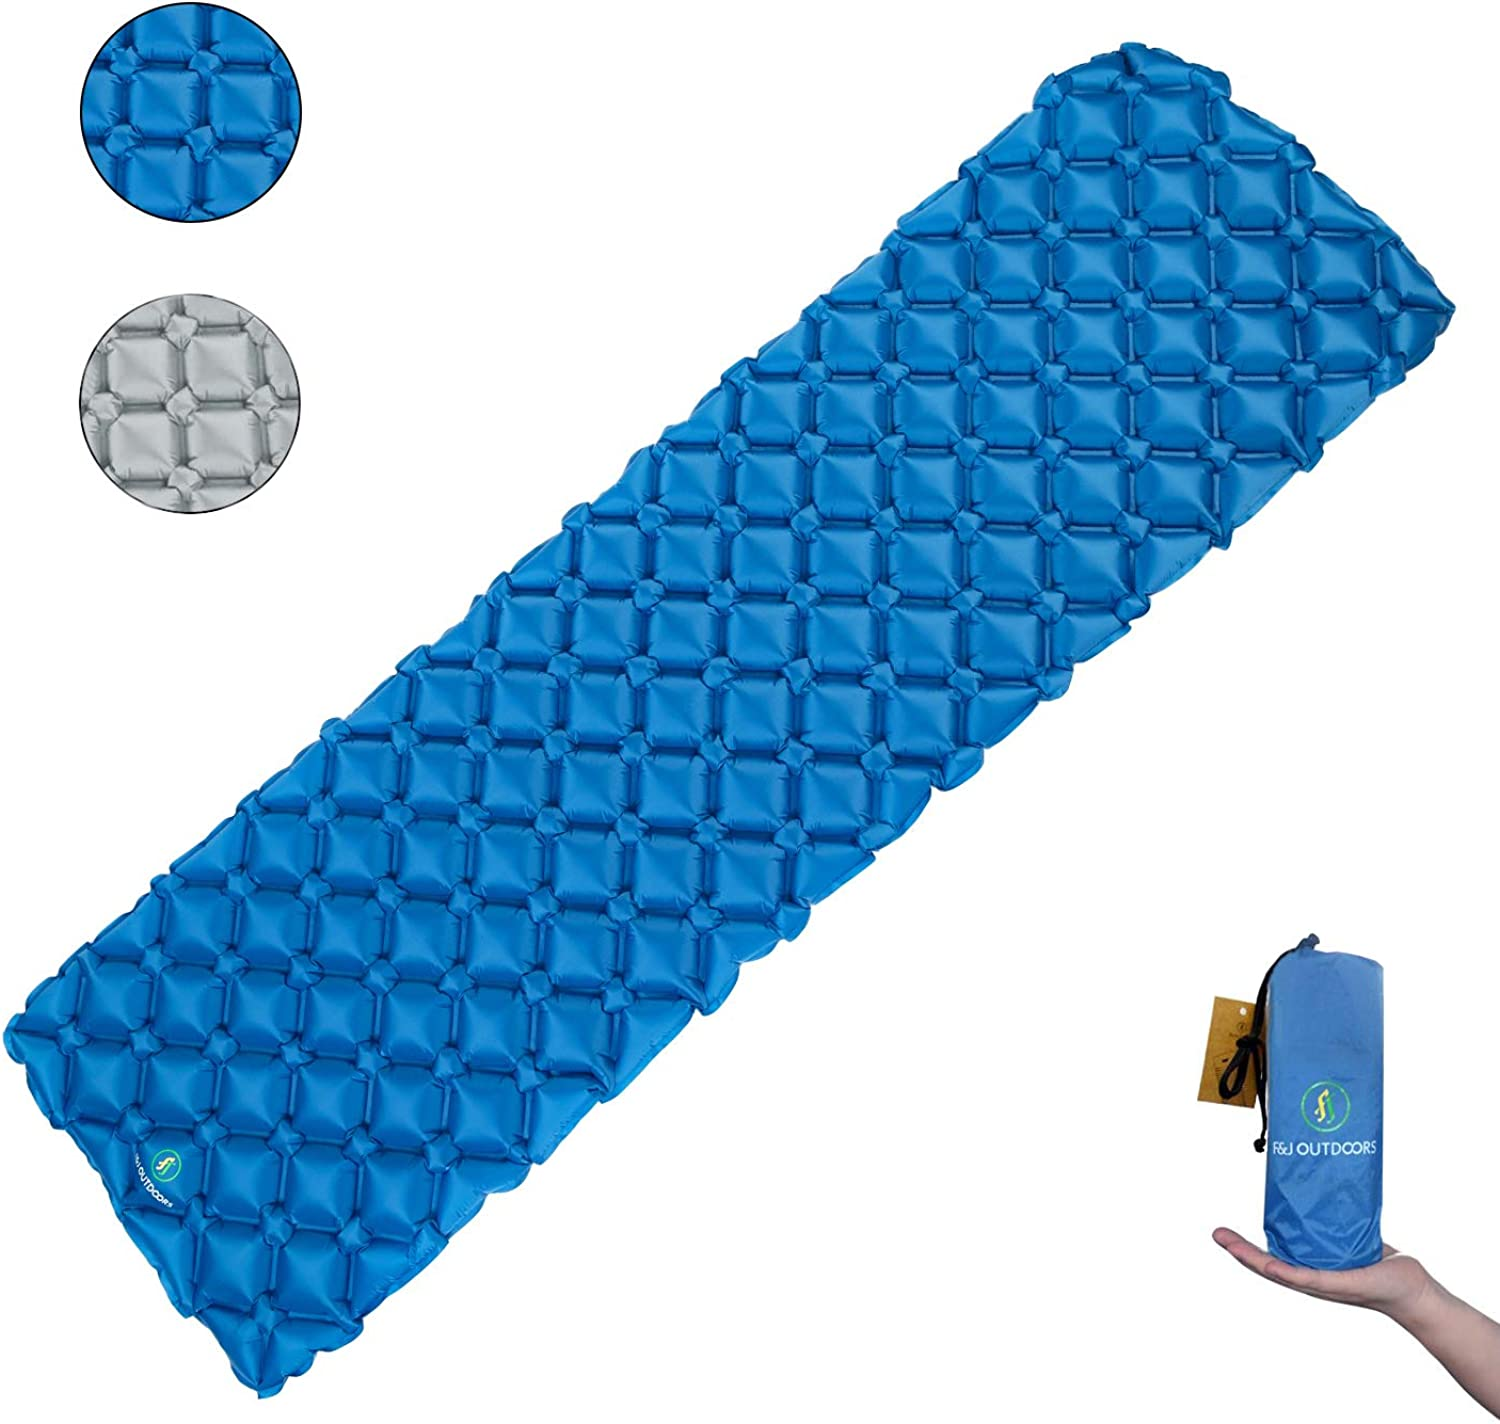 F J outdoors Camping Sleeping Pads, Foldable Ultralight Air Sleeping Pad for Backpacking Hiking, Durable Inflatable Insulated Sleeping Mat Mattress